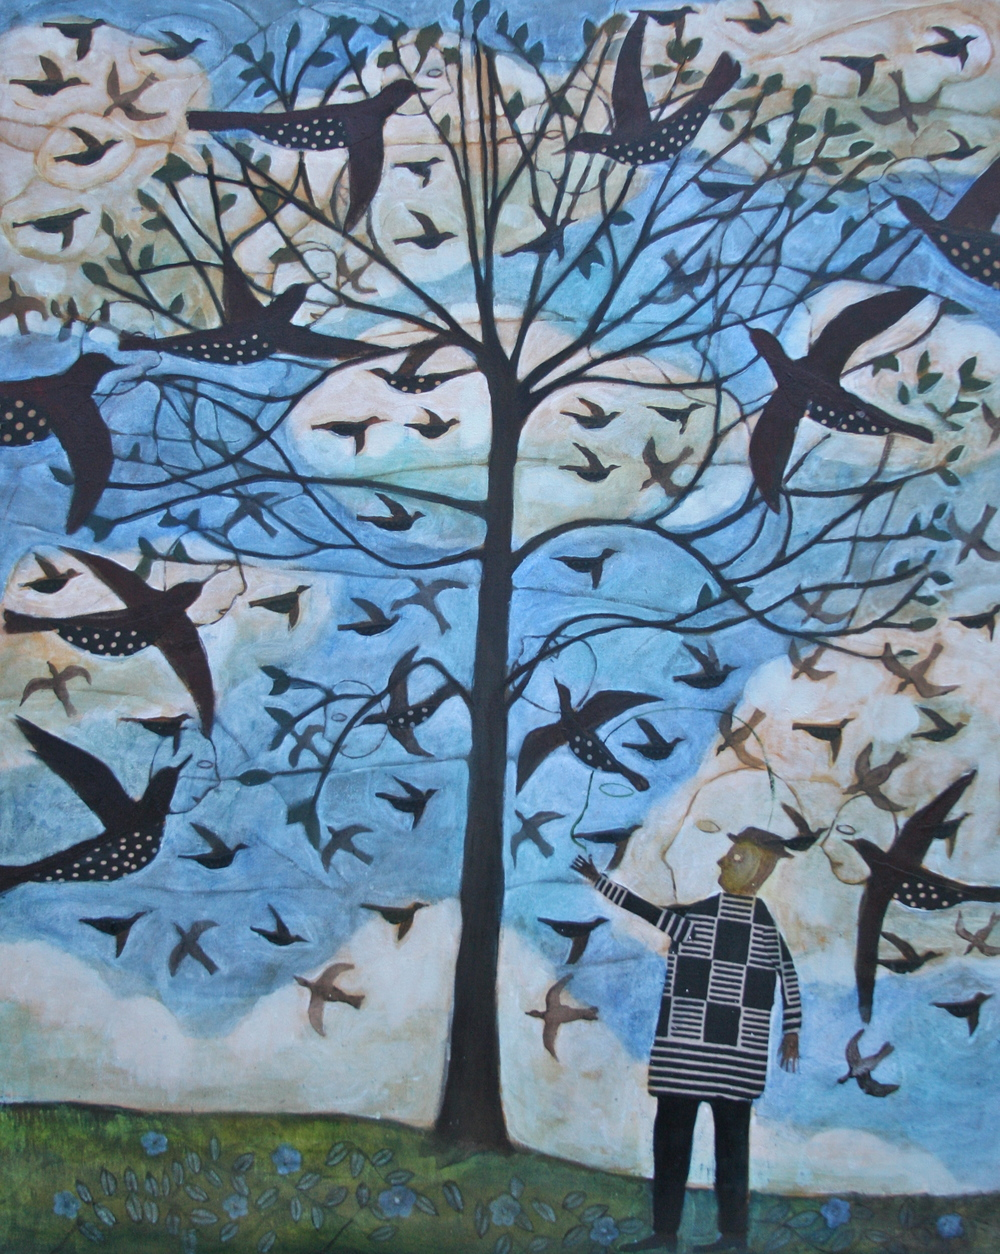 Man Having a Discussion with Birds In a Tree